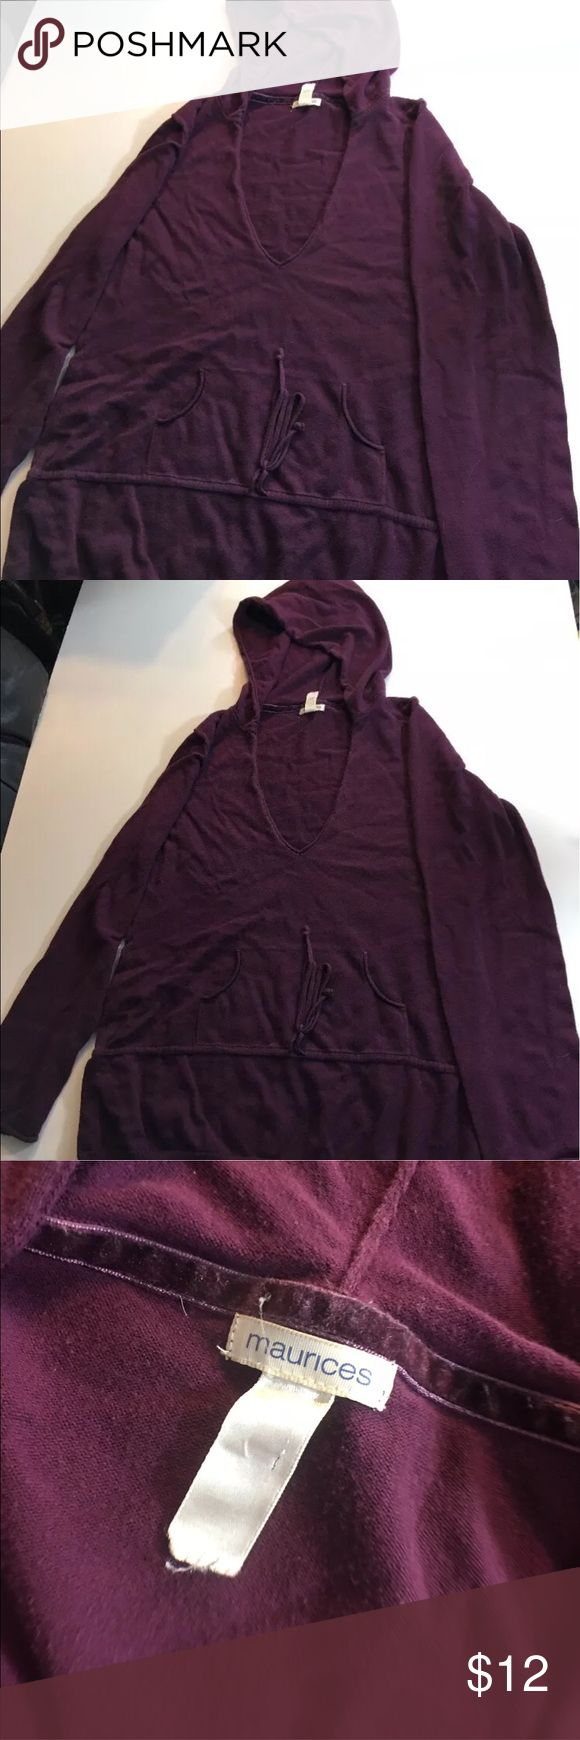 "MAURICES S XL Hooded Lightweight Purple Women's MAURICES Size XL Hooded Lightweight Sweater Dark Purple Women's  22 1/2"" arm pit to arm pit 27"" Length Maurices Tops Sweatshirts & Hoodies"